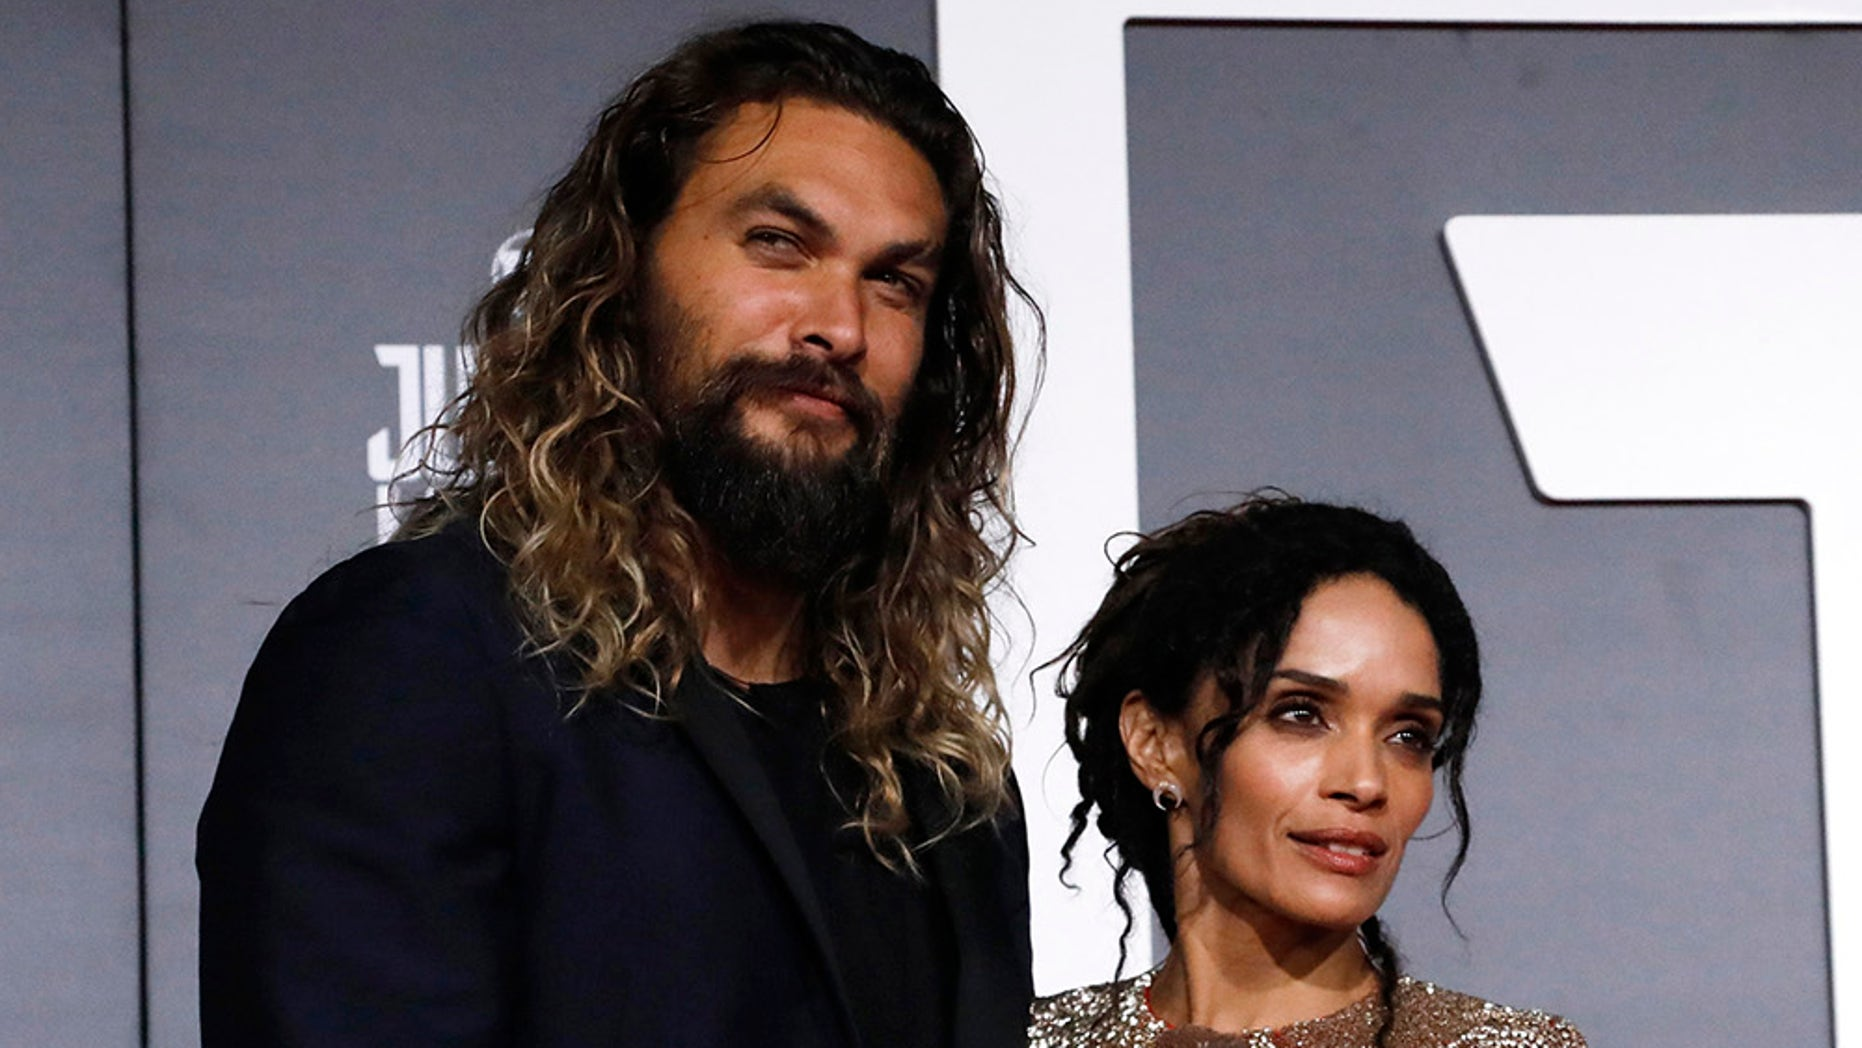 Jason Momoa Heroically Leads A Haka Dance At 'Aquaman' Premiere